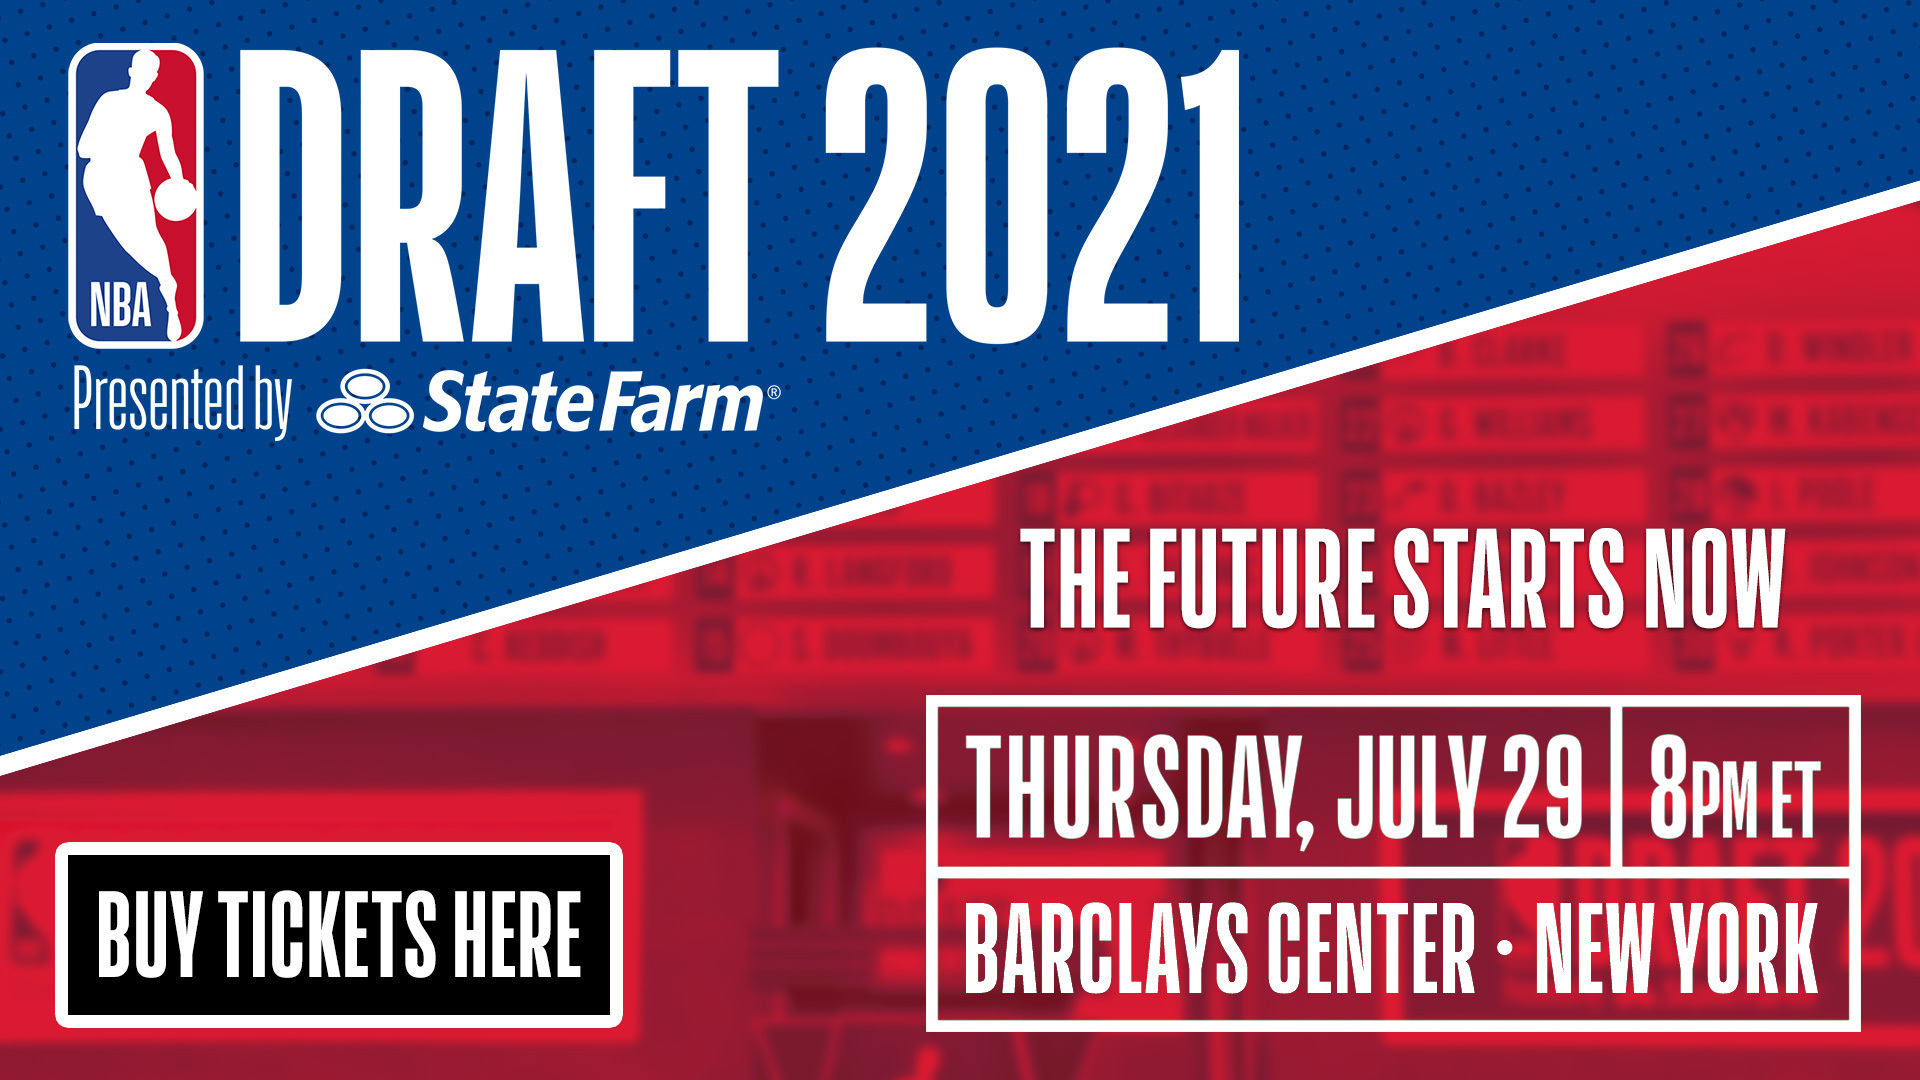 Tickets on sale for 2021 Draft at Barclays Center